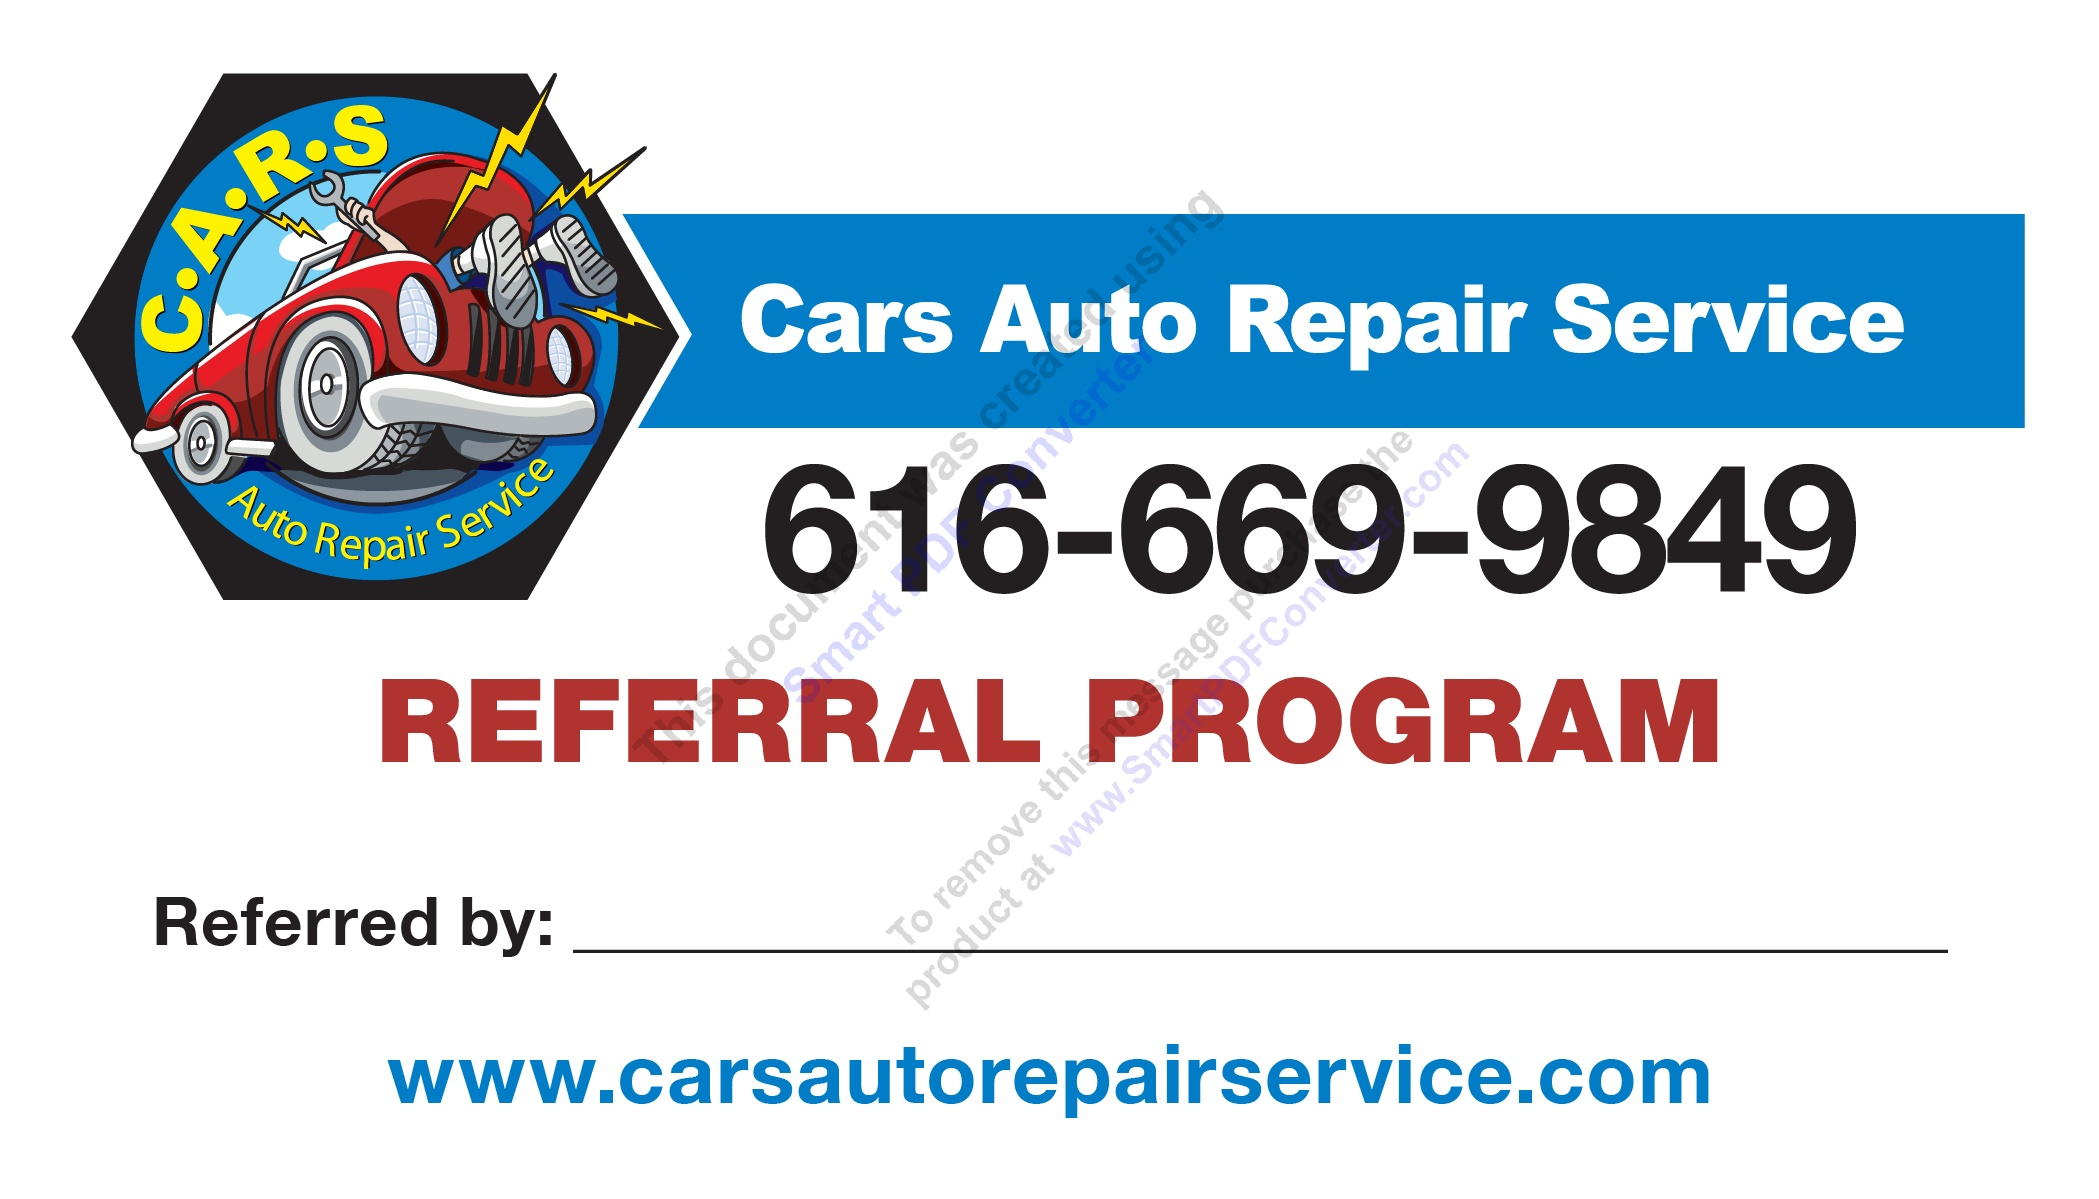 cars_referral_card_proof_0001